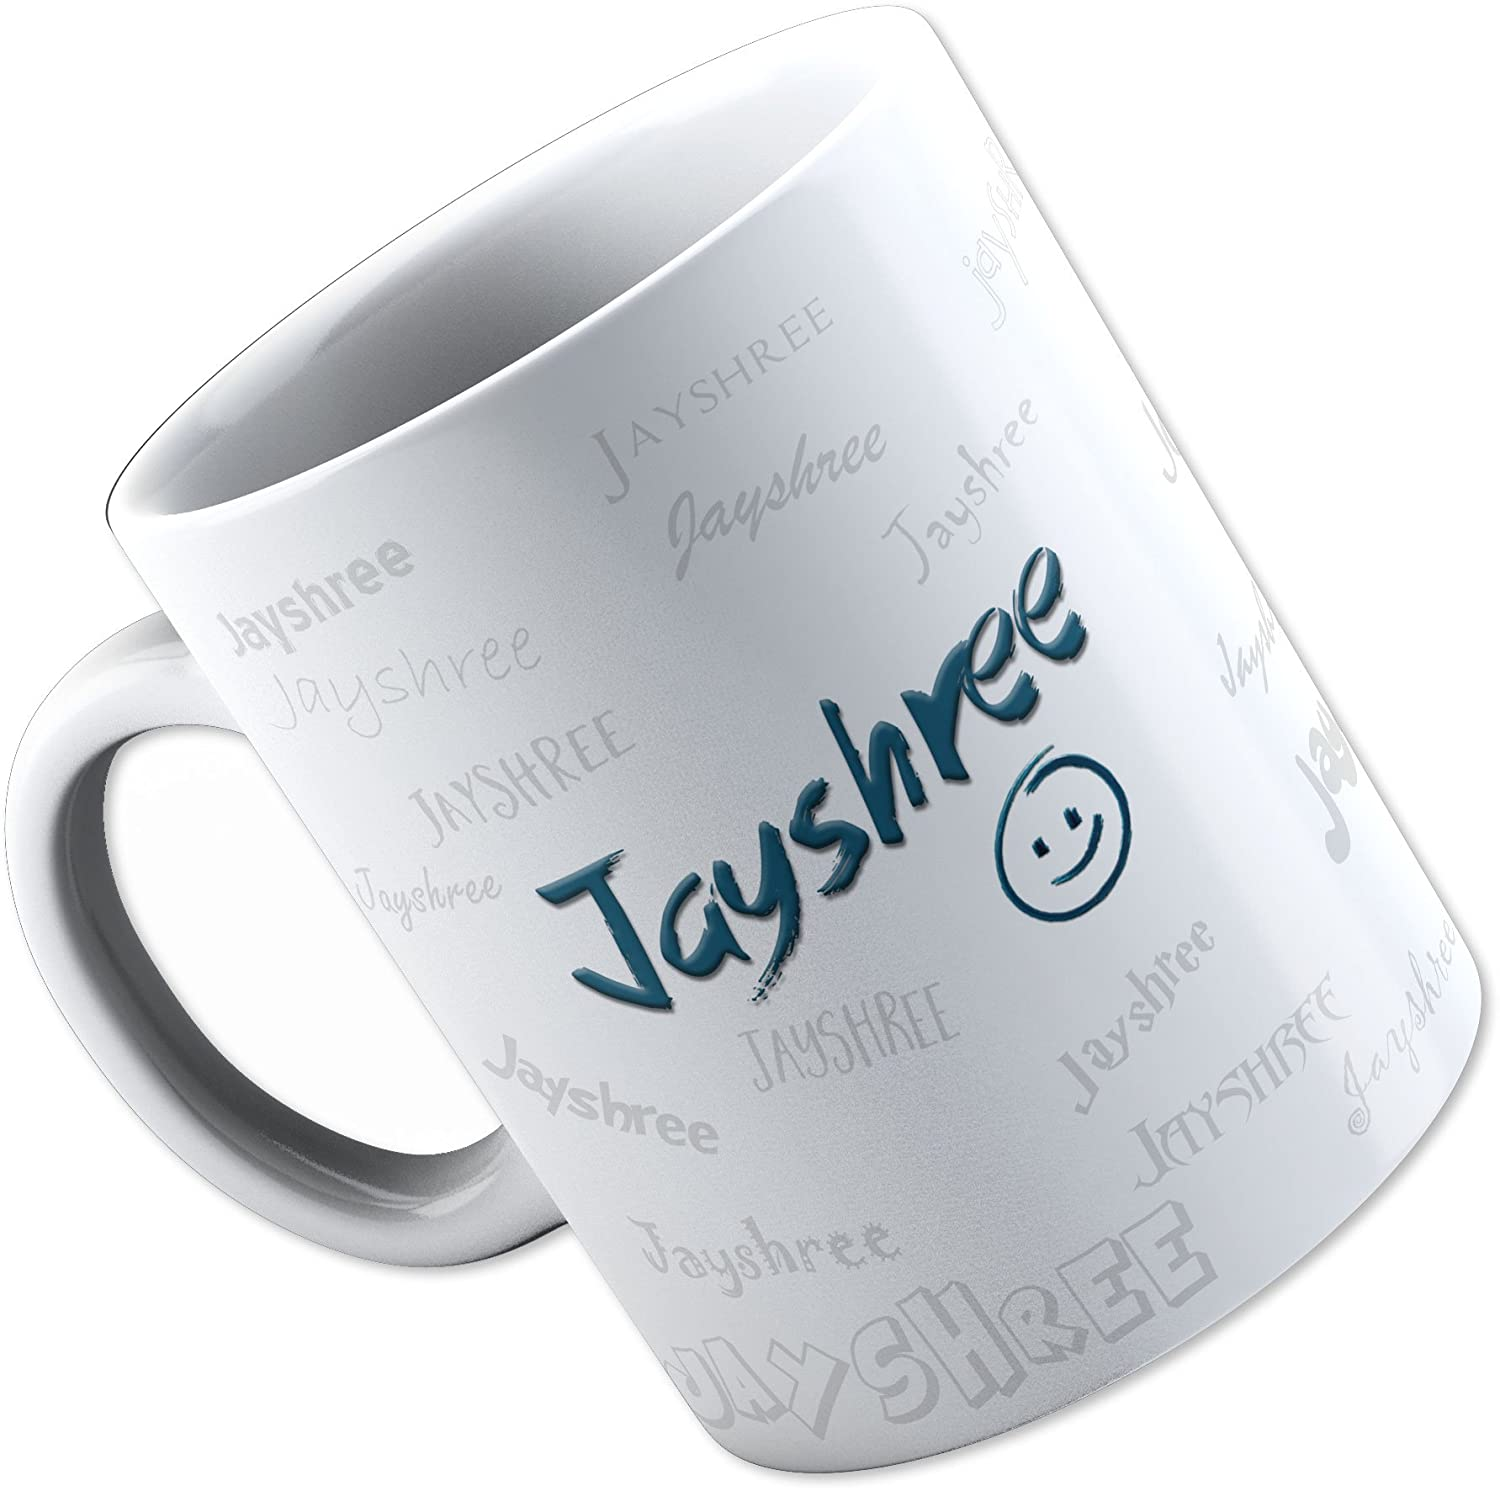 Buy Ucard Jayshree Personalized Coffee Mug Online at Low Prices in ...